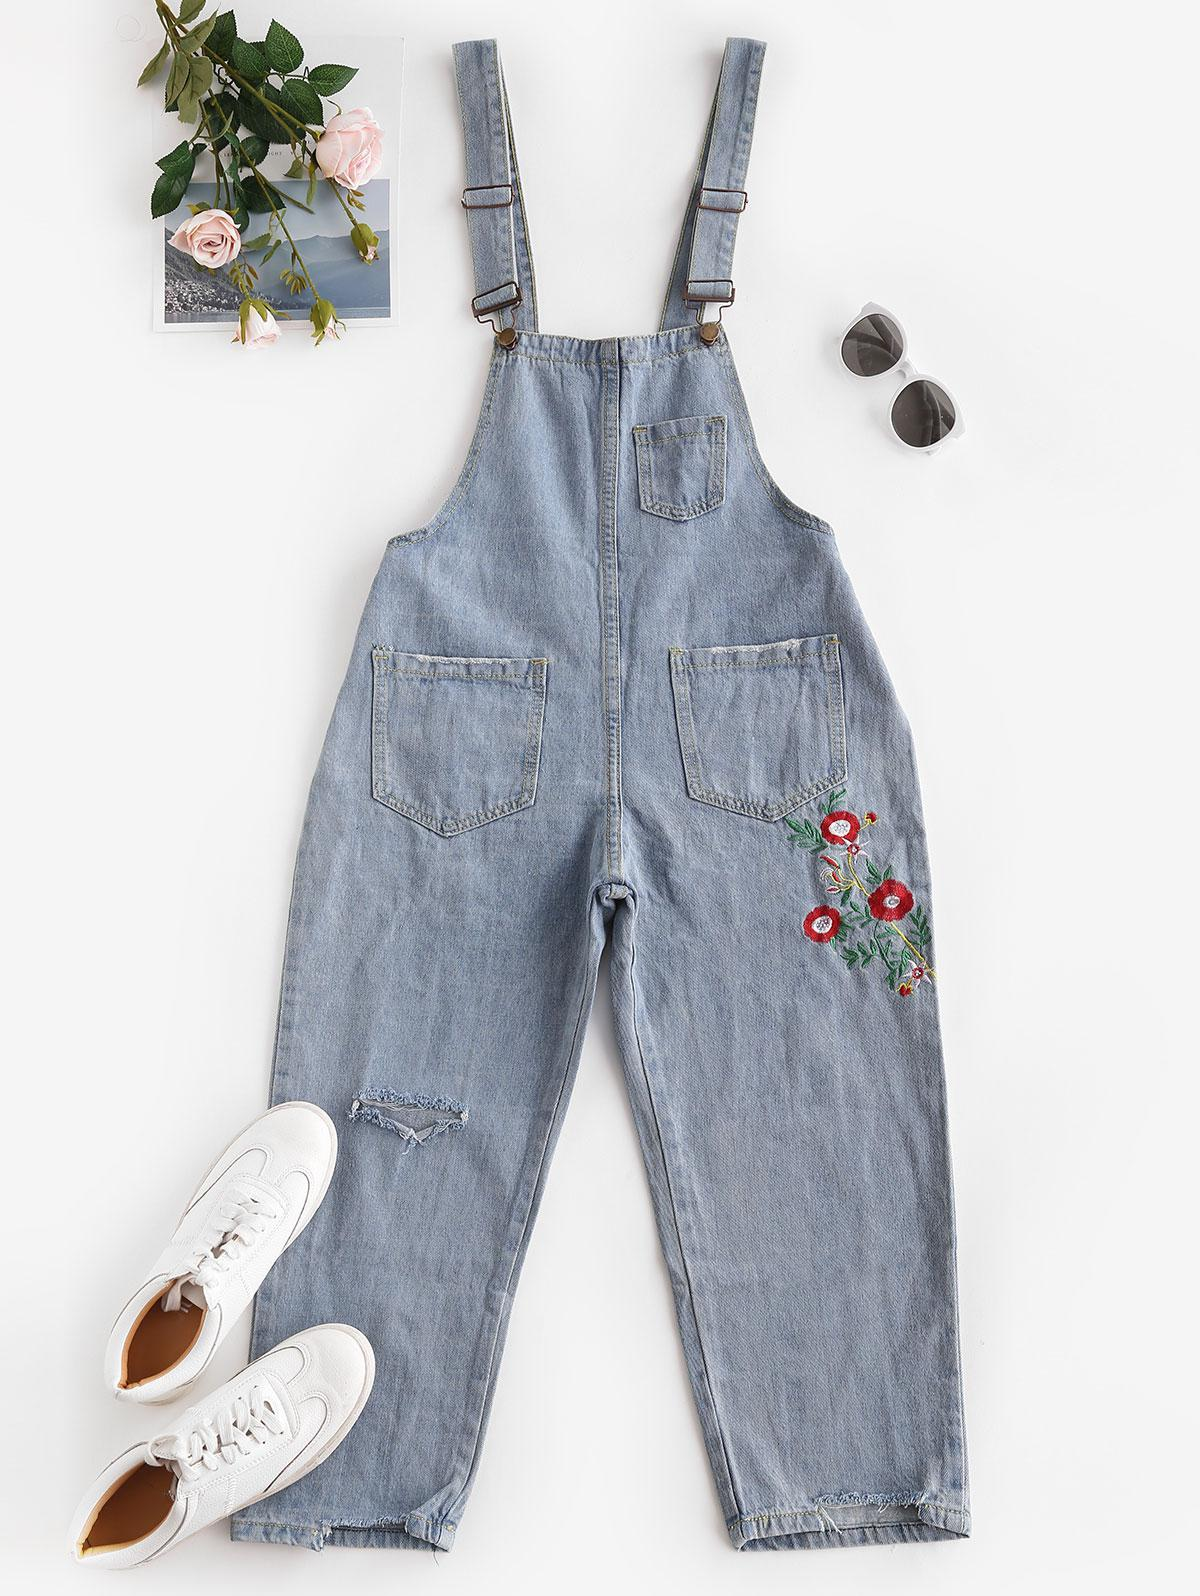 Floral Embroidered Ripped Denim Overalls Jumpsuit